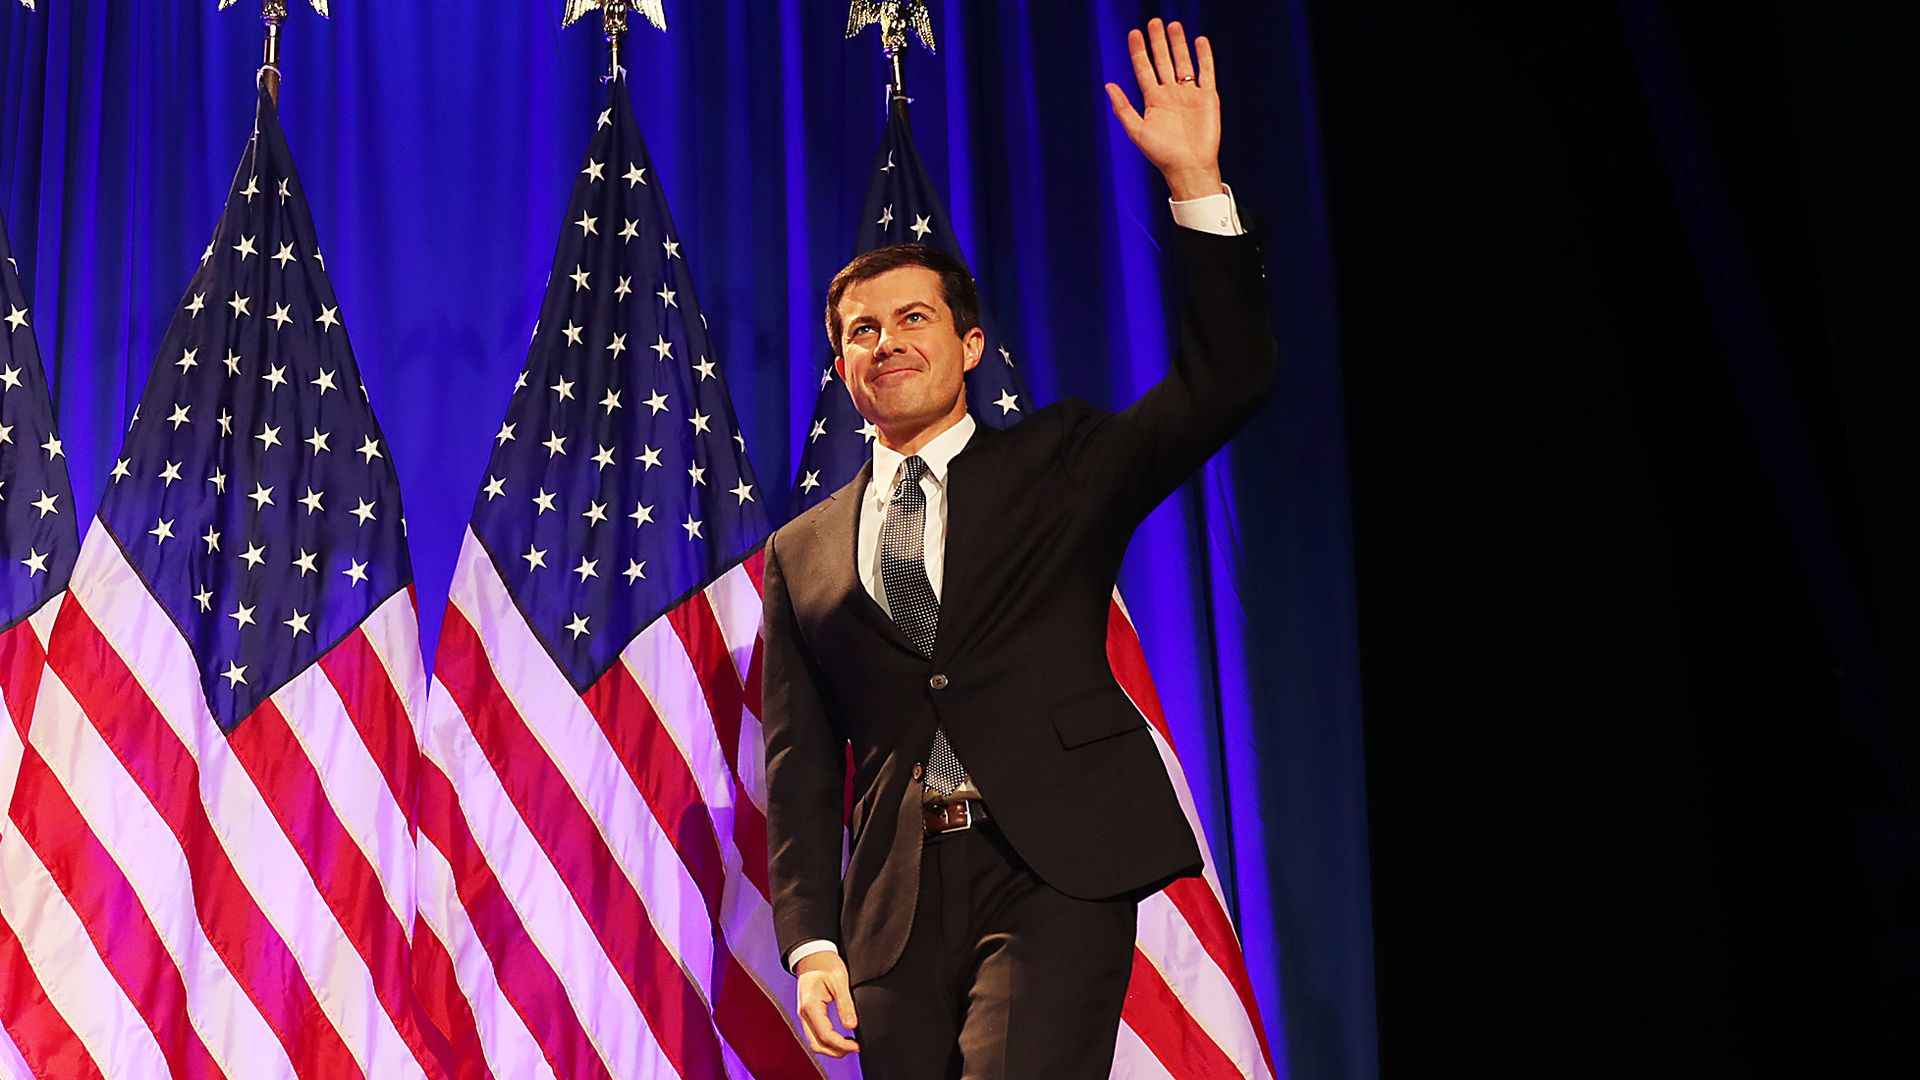 Democratic presidential candidate Pete Buttigieg arrives on stage at a Veterans Day address at the Rochester Opera House on November 11, 2019 in Rochester, New Hampshire.